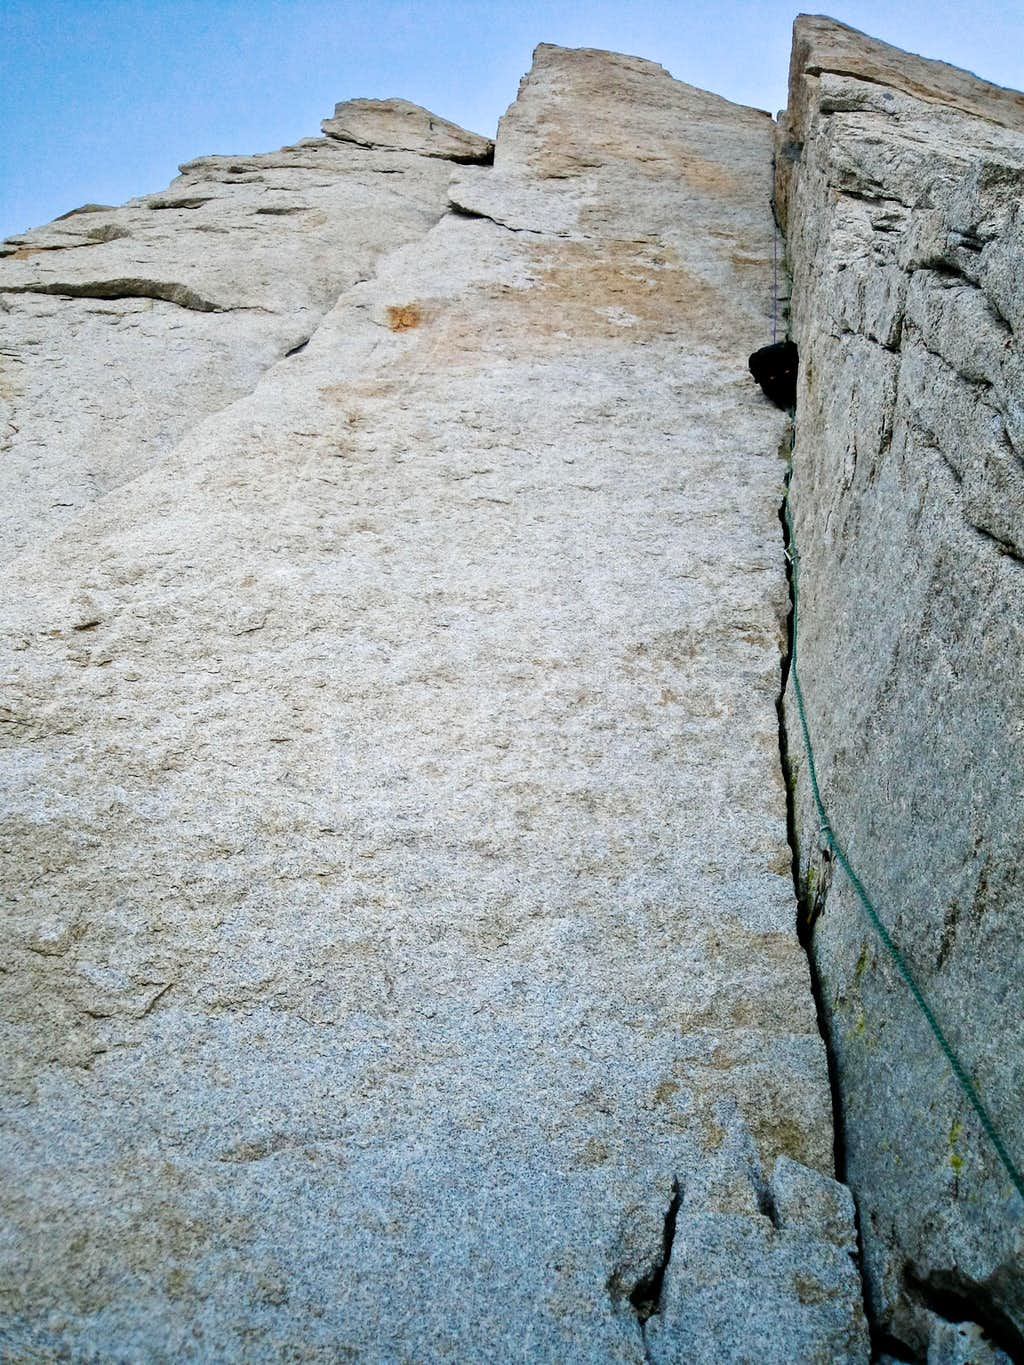 The classic Yosemite style dihedral of Sweet Carillon.